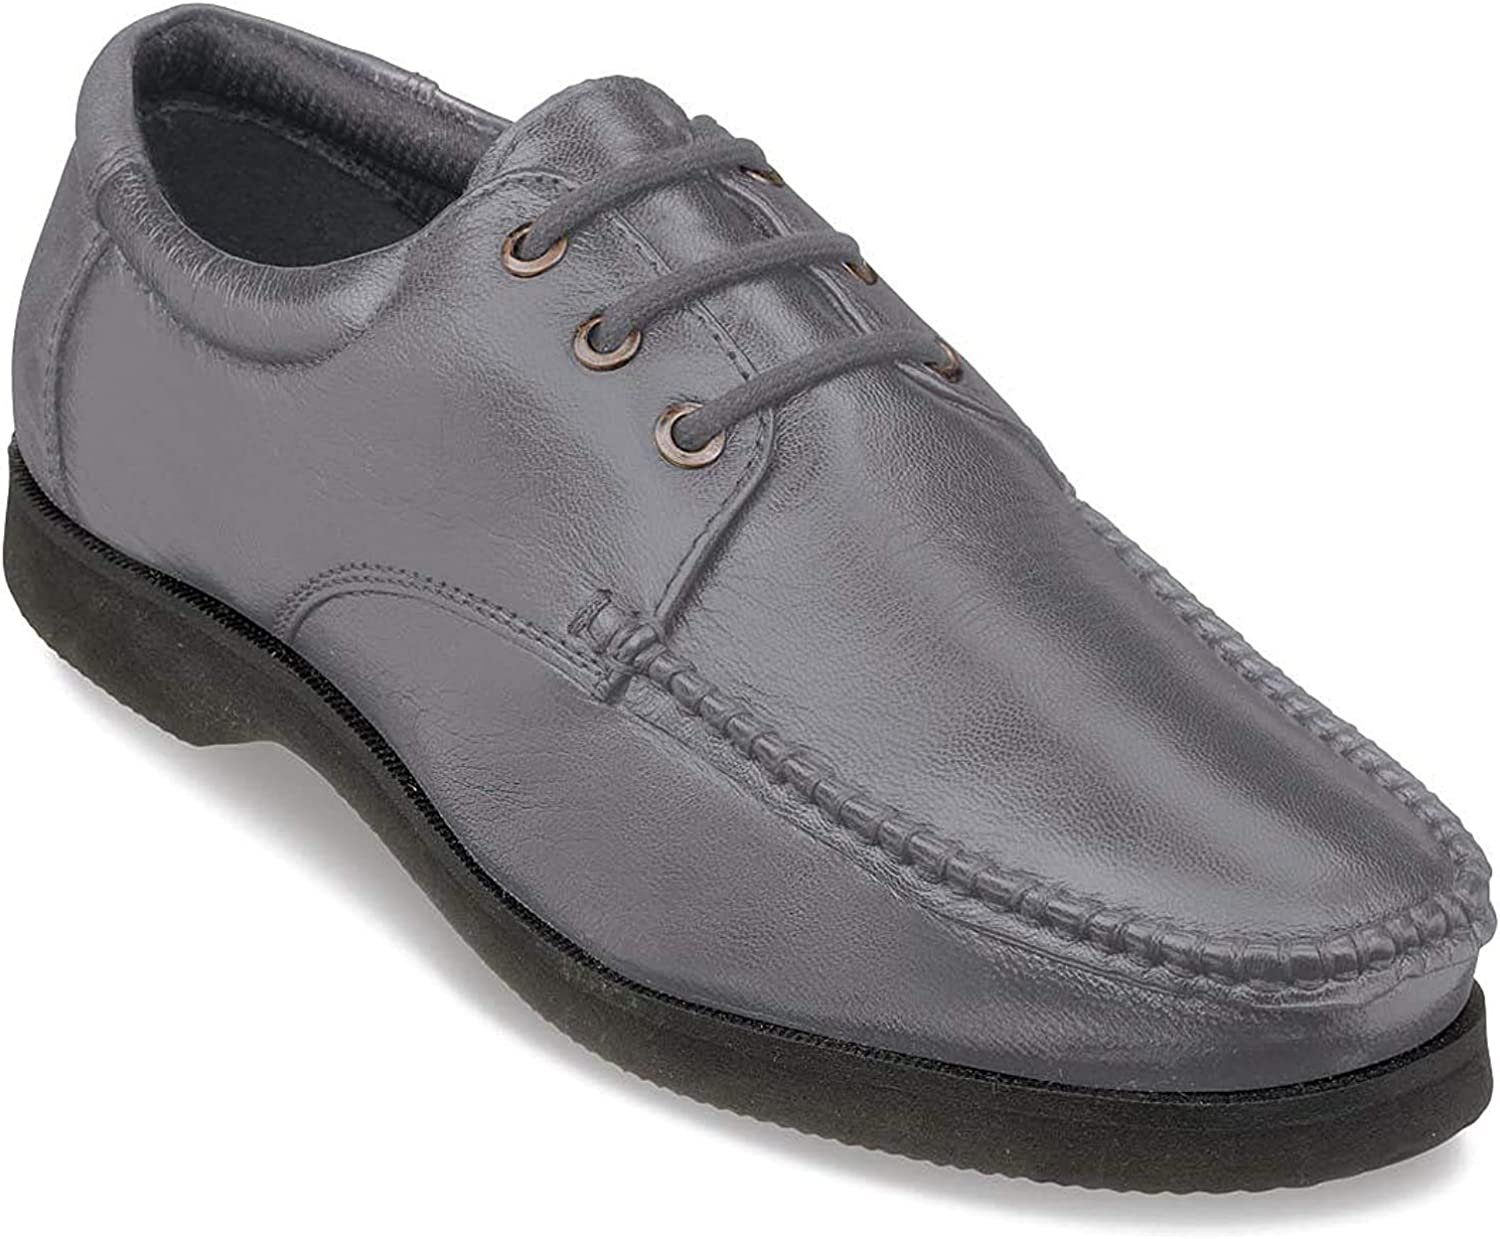 Mens Shoes Wide Fit Leather Lace Up